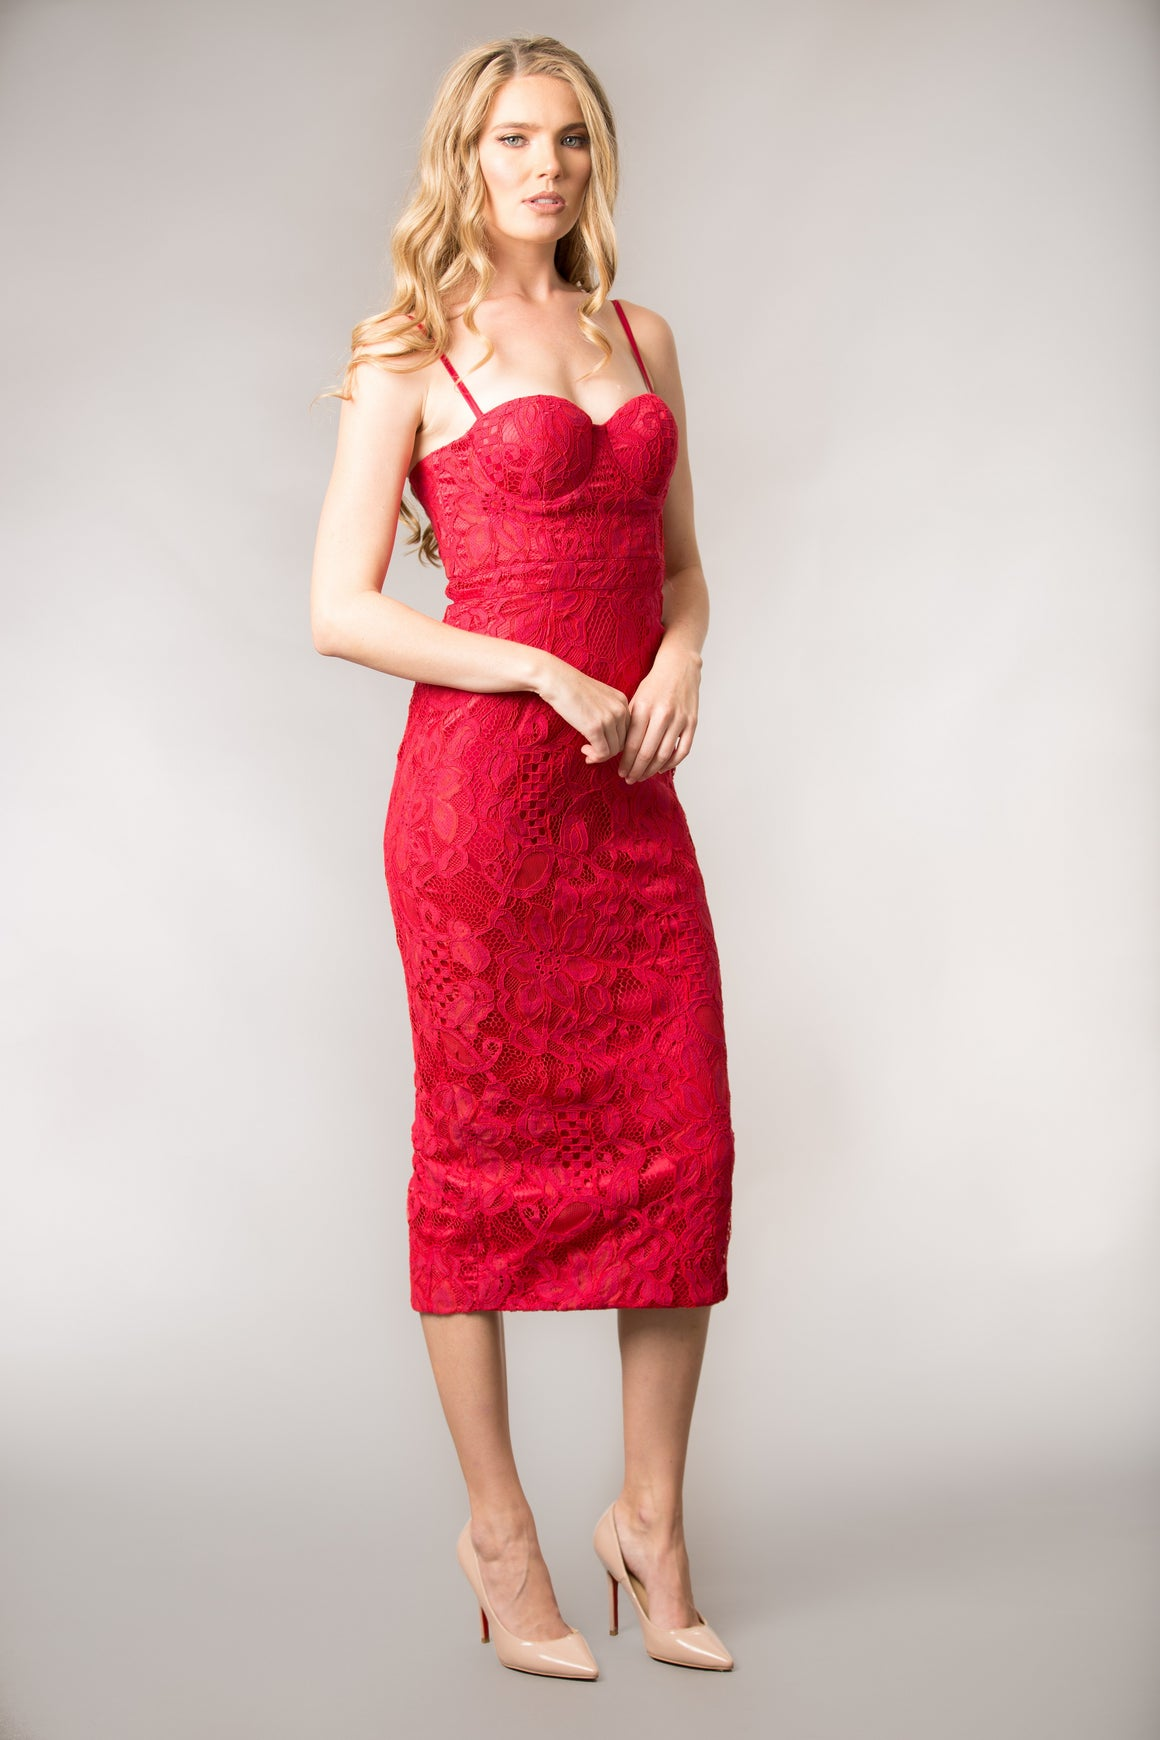 Dolce Red Dress